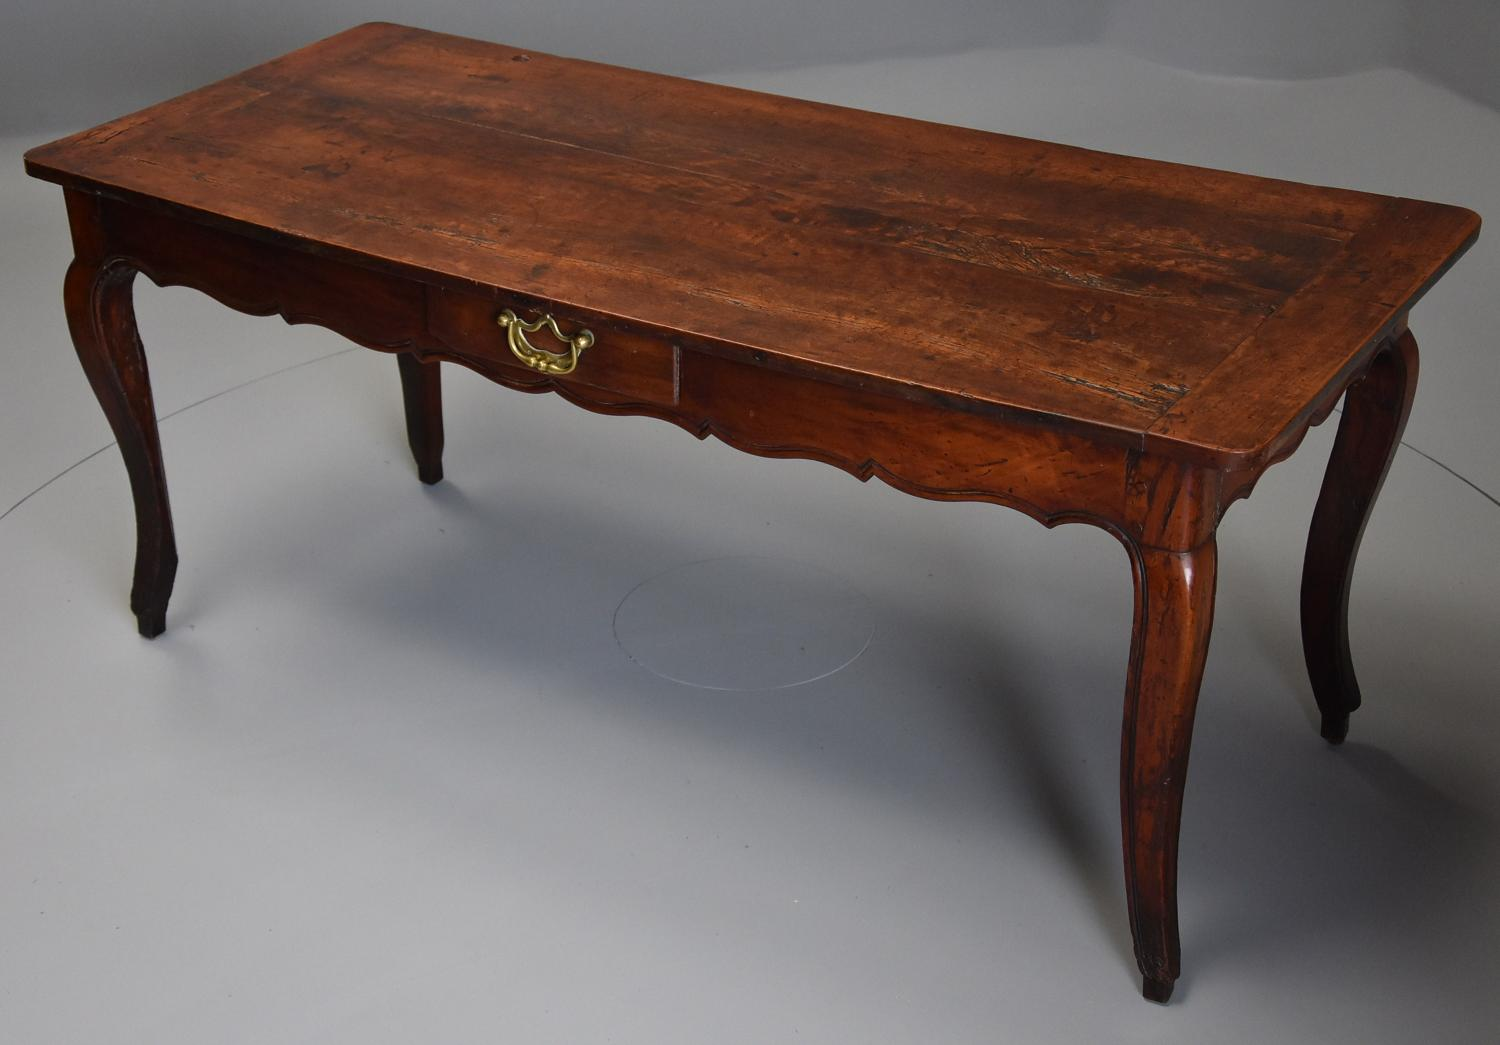 18th century French fruitwood farmhouse table with superb patina